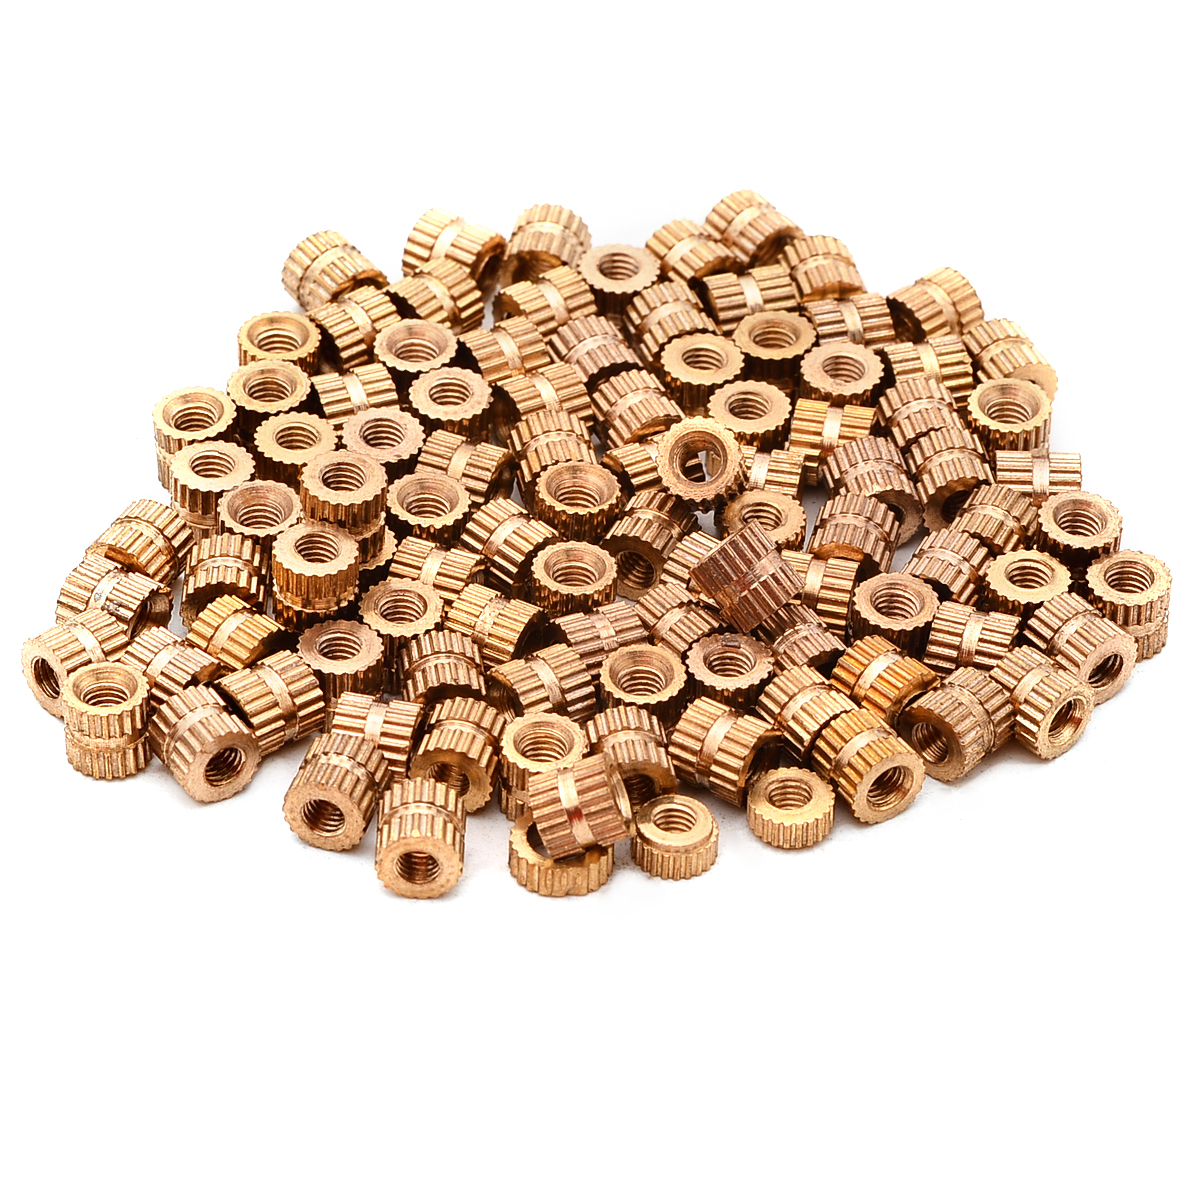 100pcs Round Brass Knurl Insert Nuts <font><b>M3x5mm</b></font> 5mm(OD) Metric Threaded Gold Tone Nut Set image